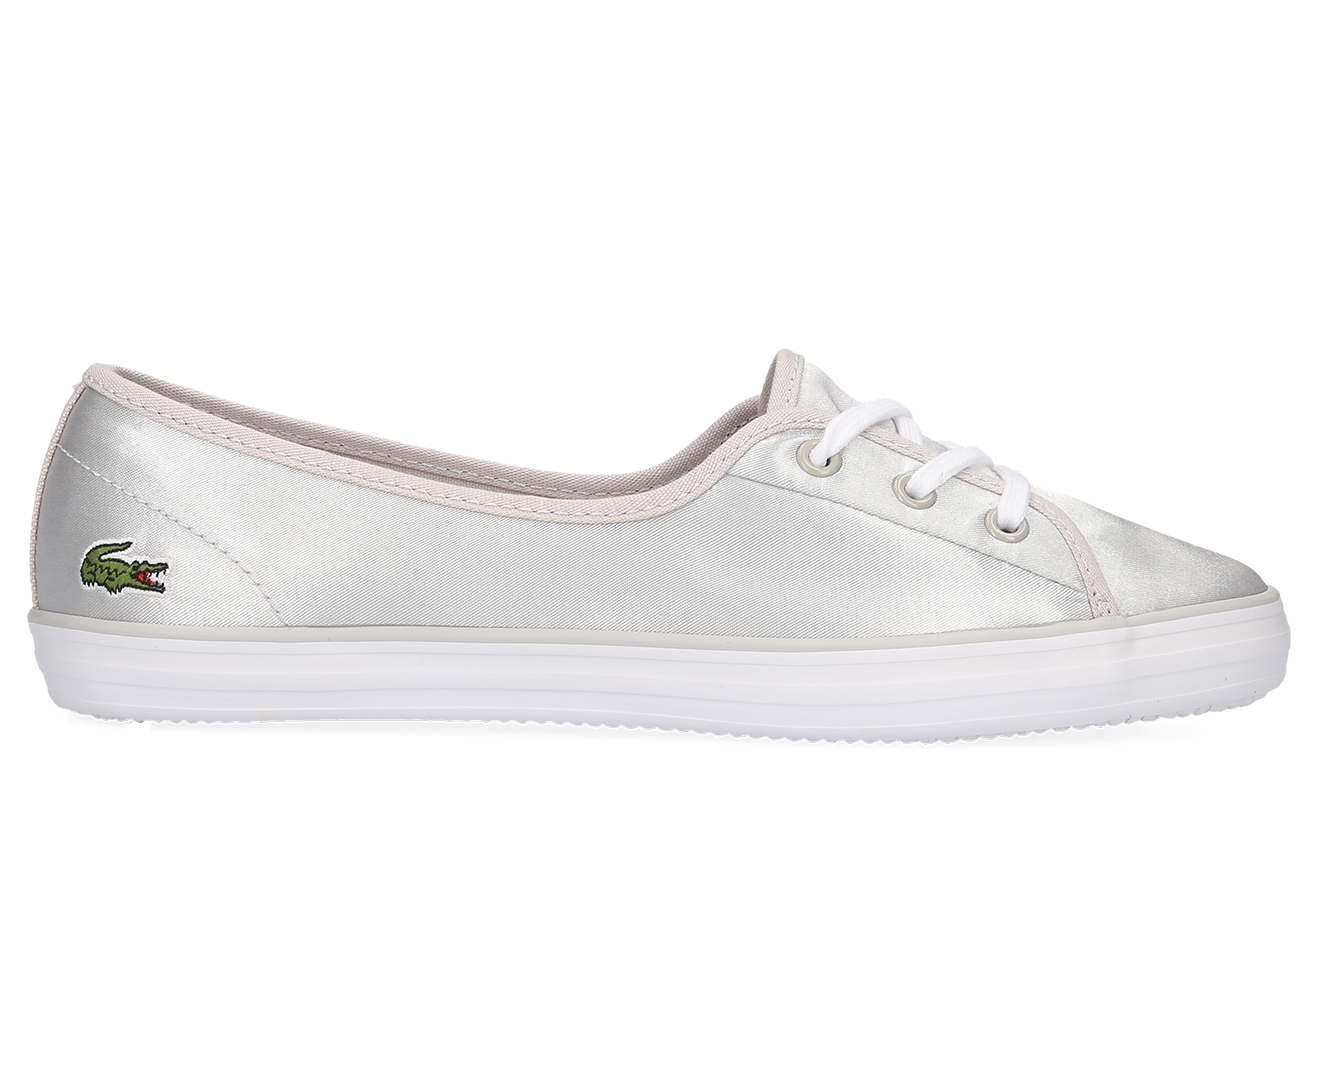 check-out 0eaa3 ae594 Details about Lacoste Women's Ziane Chunky 118 2 Shoe - Light Grey/White